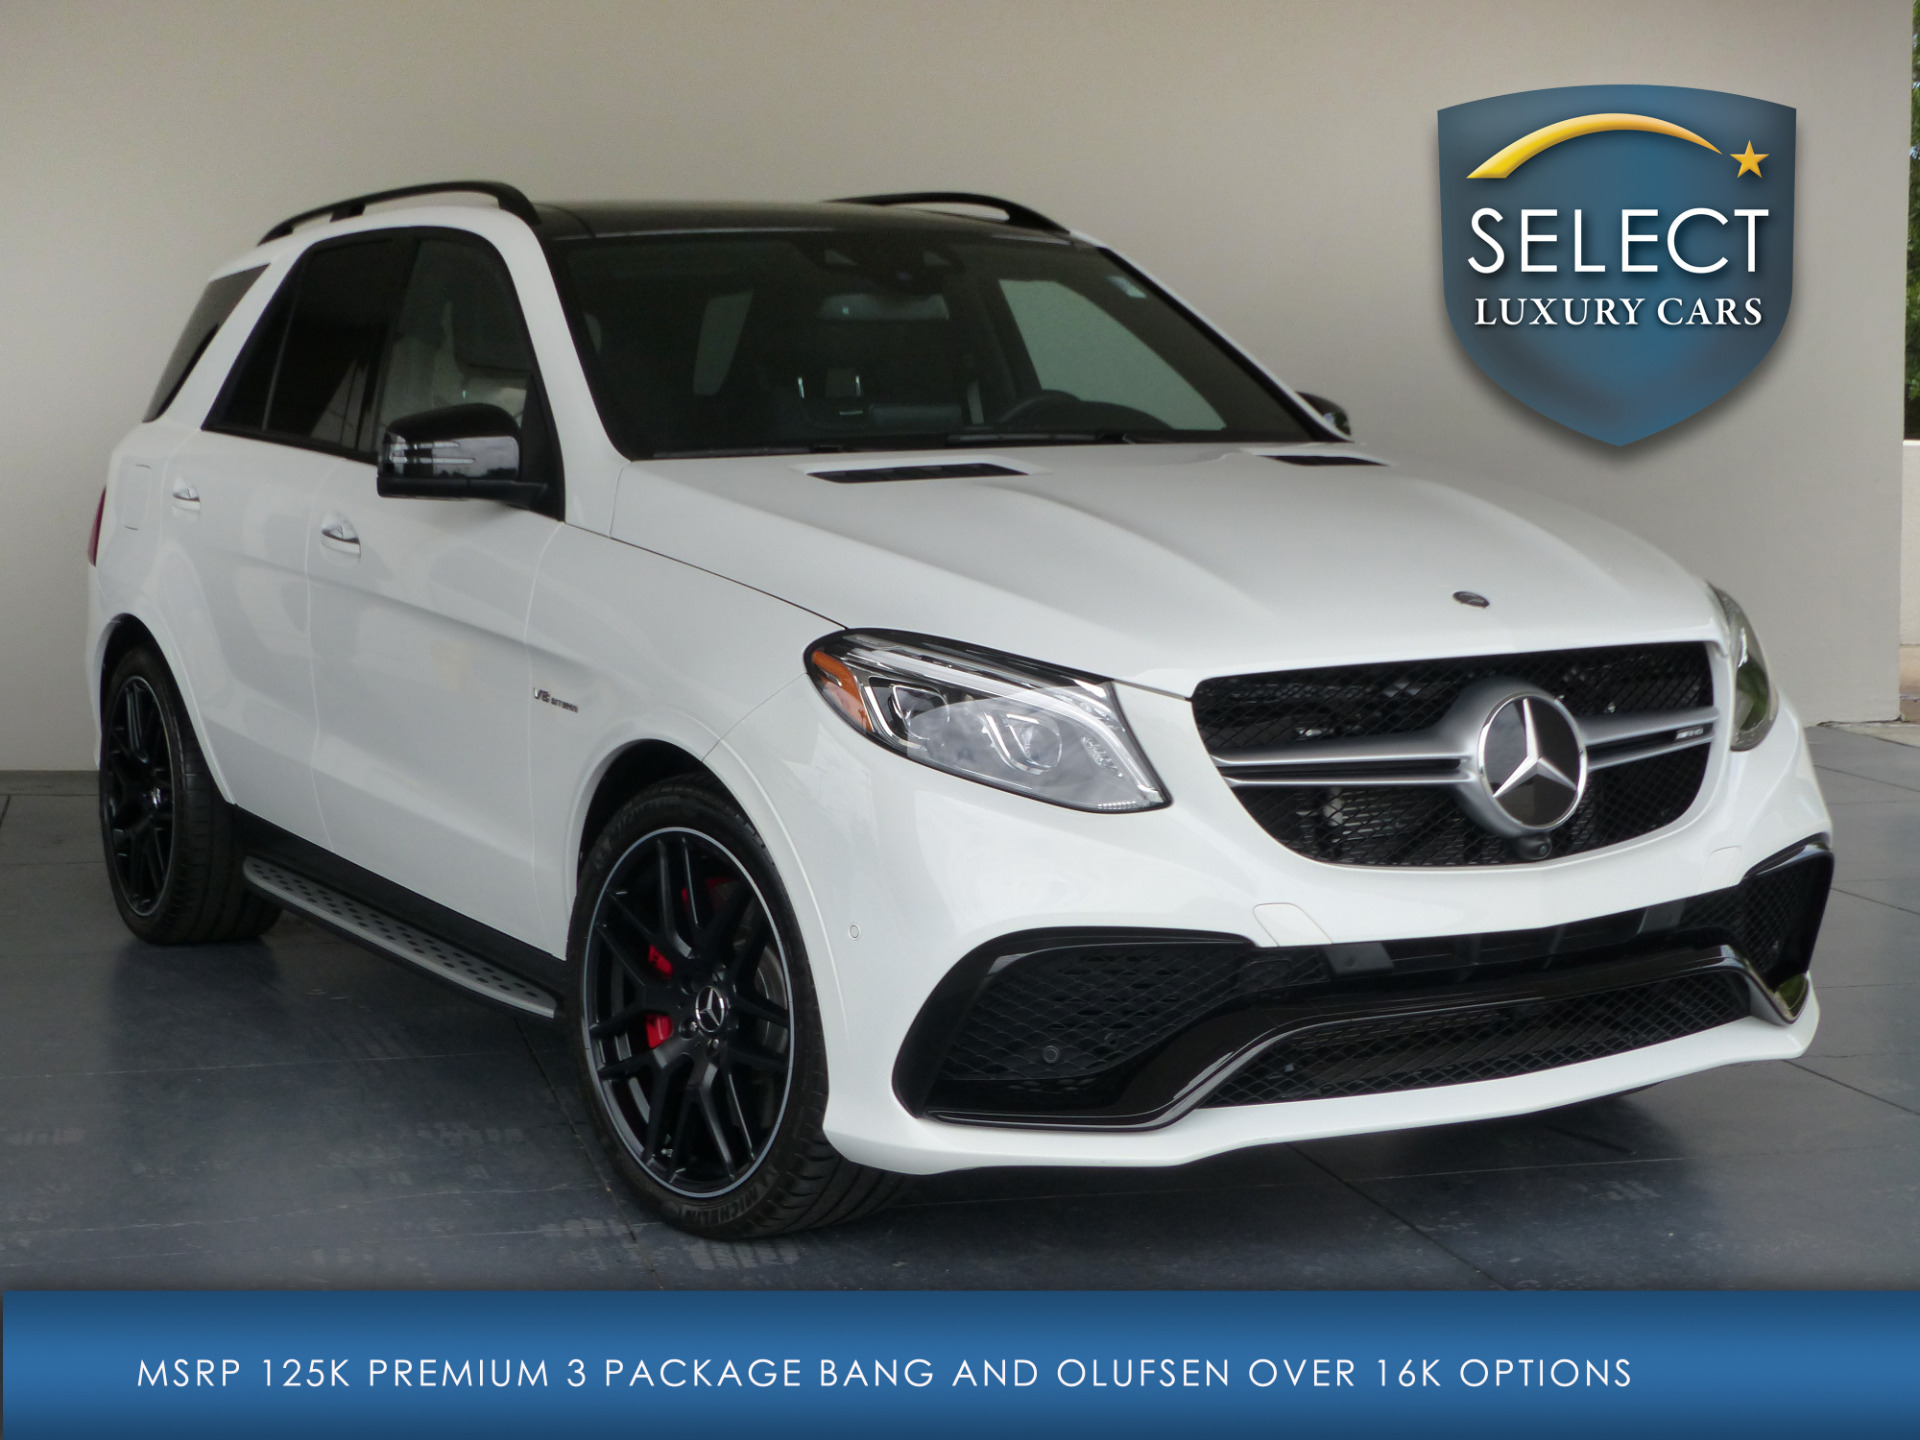 used 2017 mercedes benz gle 63 s amg marietta ga. Black Bedroom Furniture Sets. Home Design Ideas